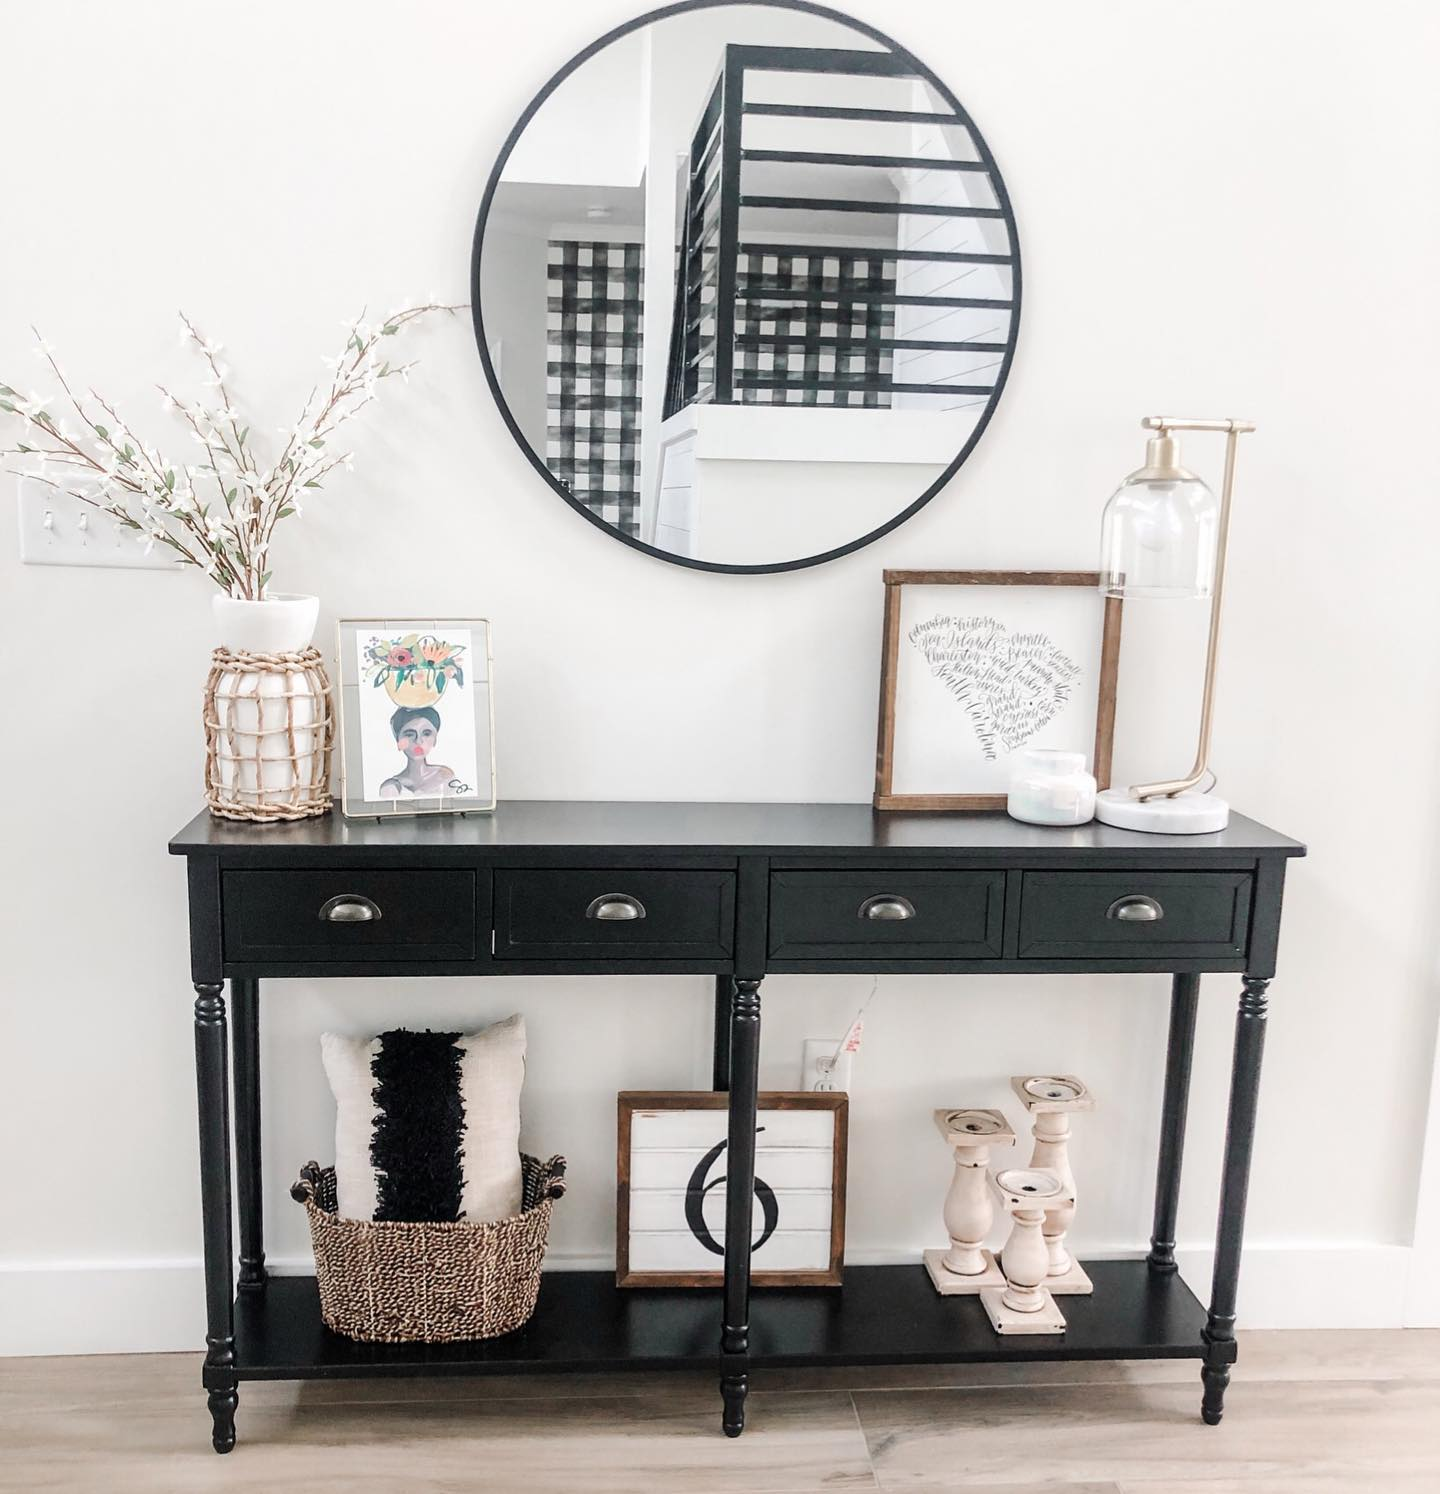 Neutral cool entryway Instagram Post